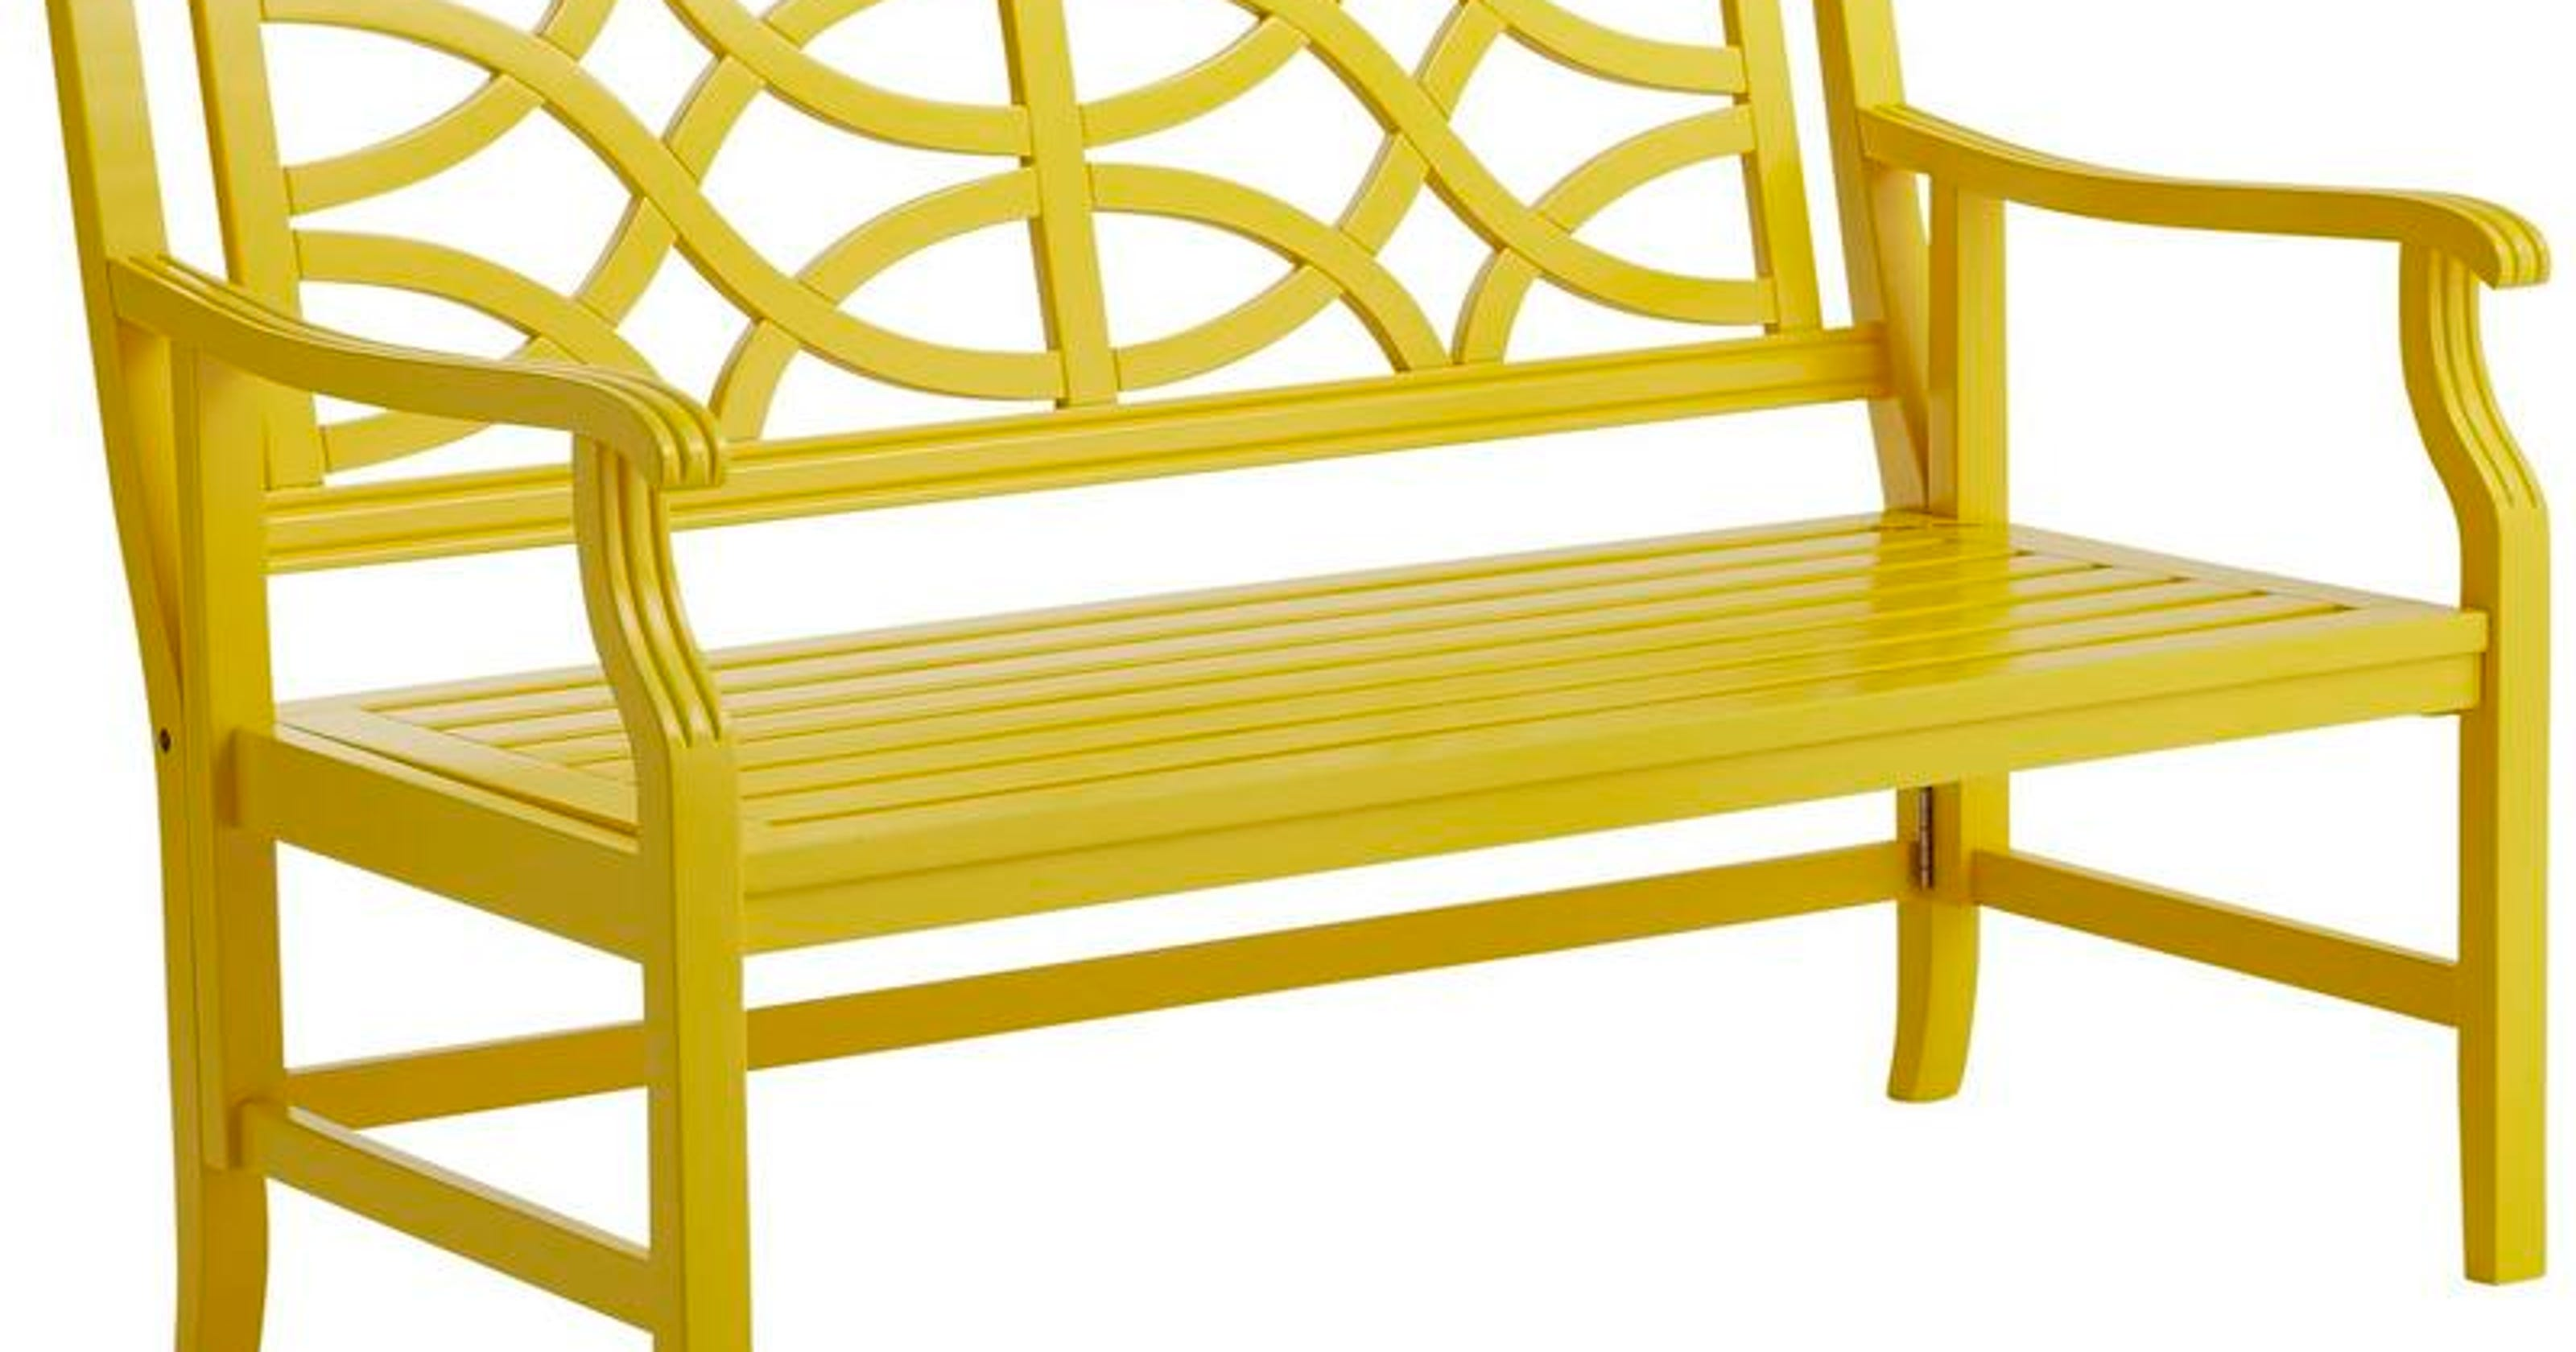 Amazing Your Space Bright Ideas For Outdoor Furniture Machost Co Dining Chair Design Ideas Machostcouk